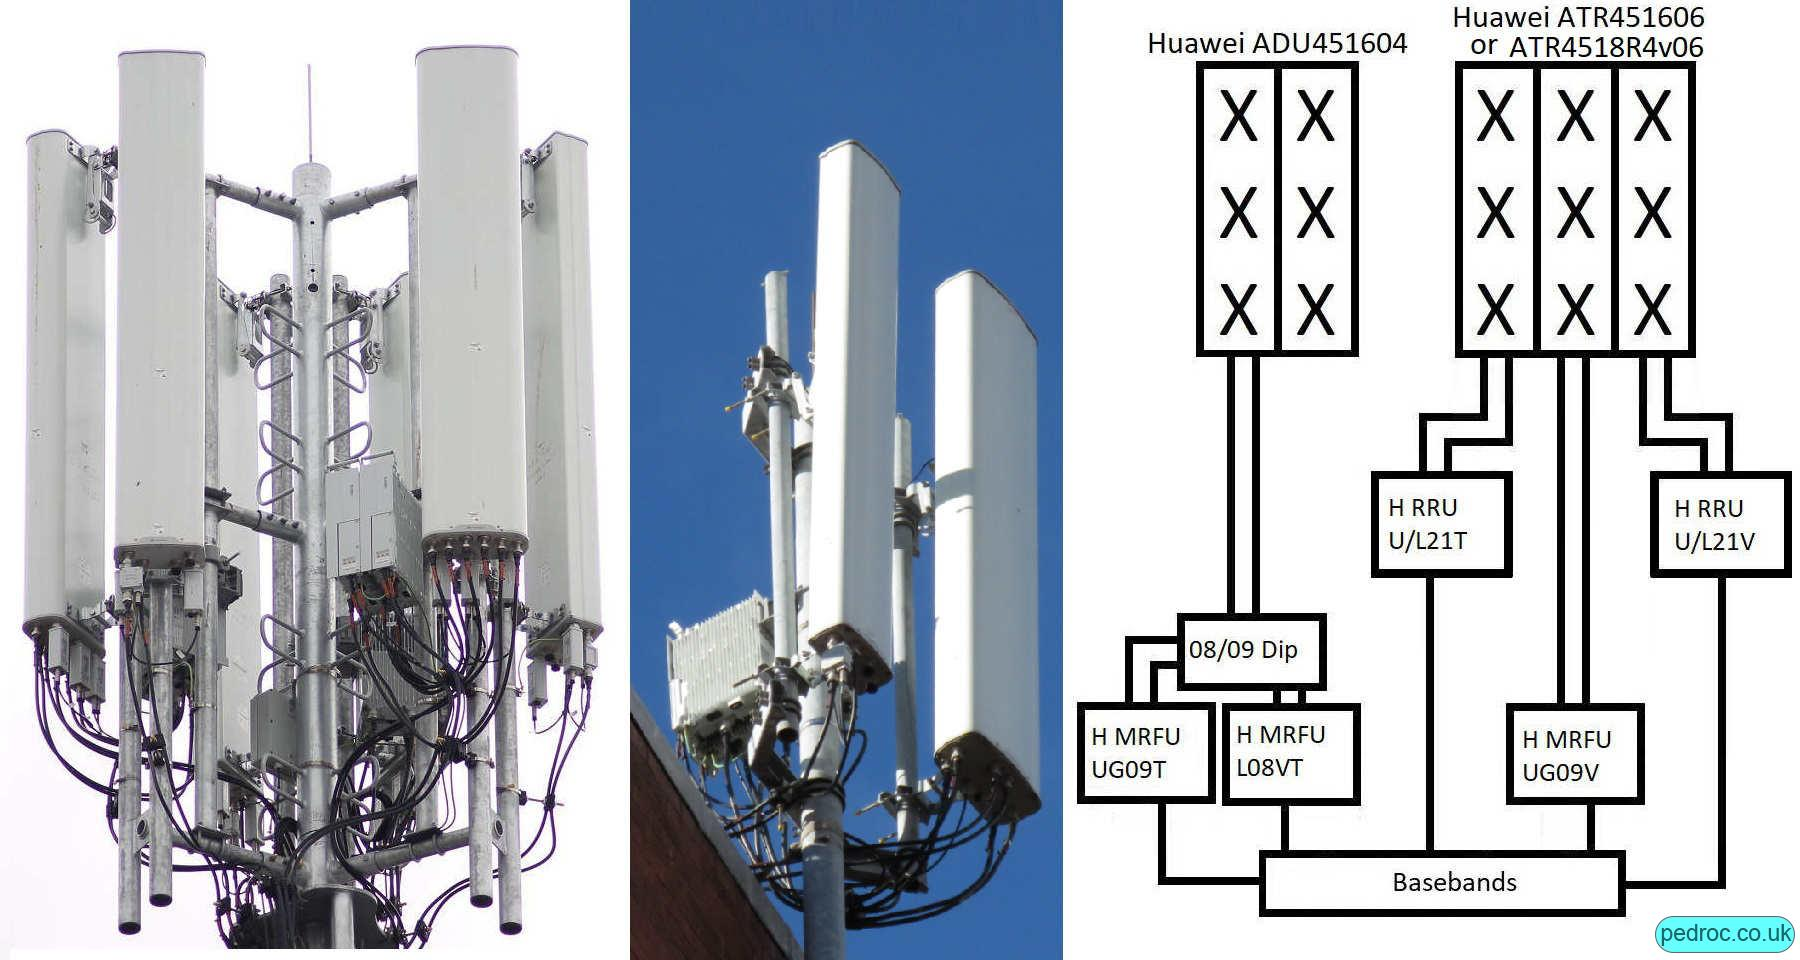 Vodafone Huawei medium site with Huawei ADU451604 and ATR451606 antennas and Huawei 2100MHz RRUs.